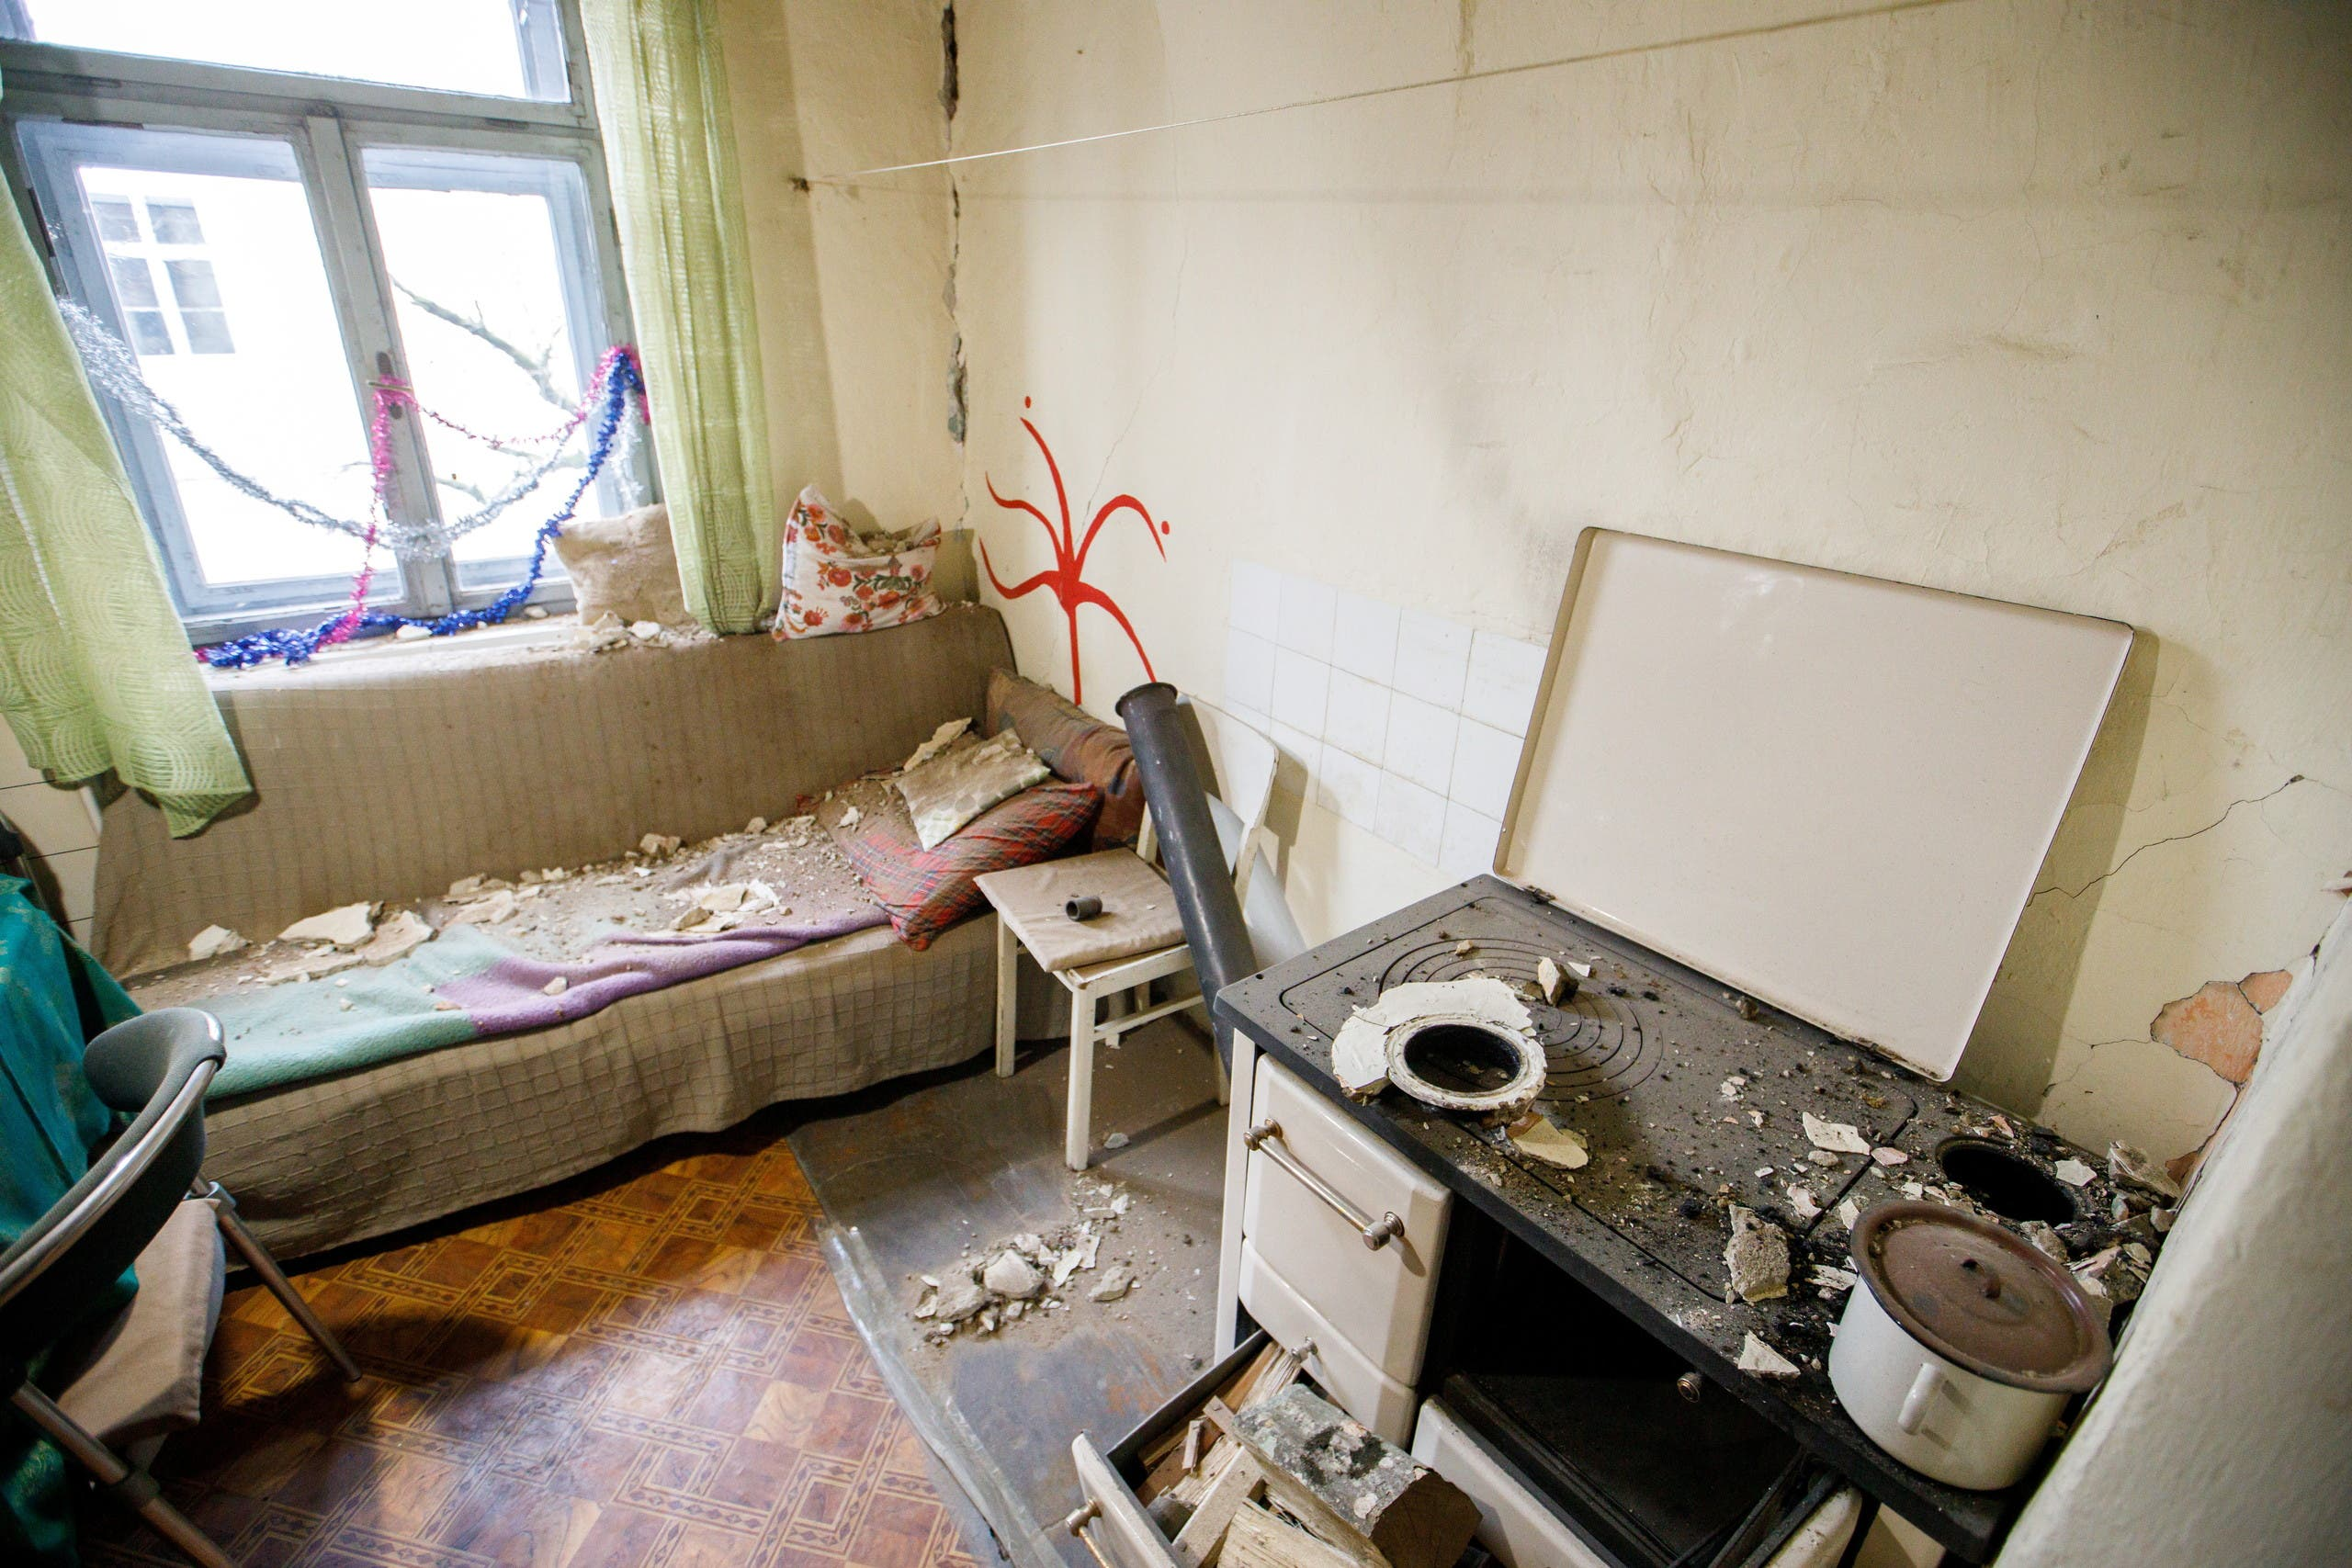 The damaged home of Ankica Loncarevic is seen after a 5.2 magnitude earthquake in Petrinja, Croatia, December 28, 2020. (Reuters)